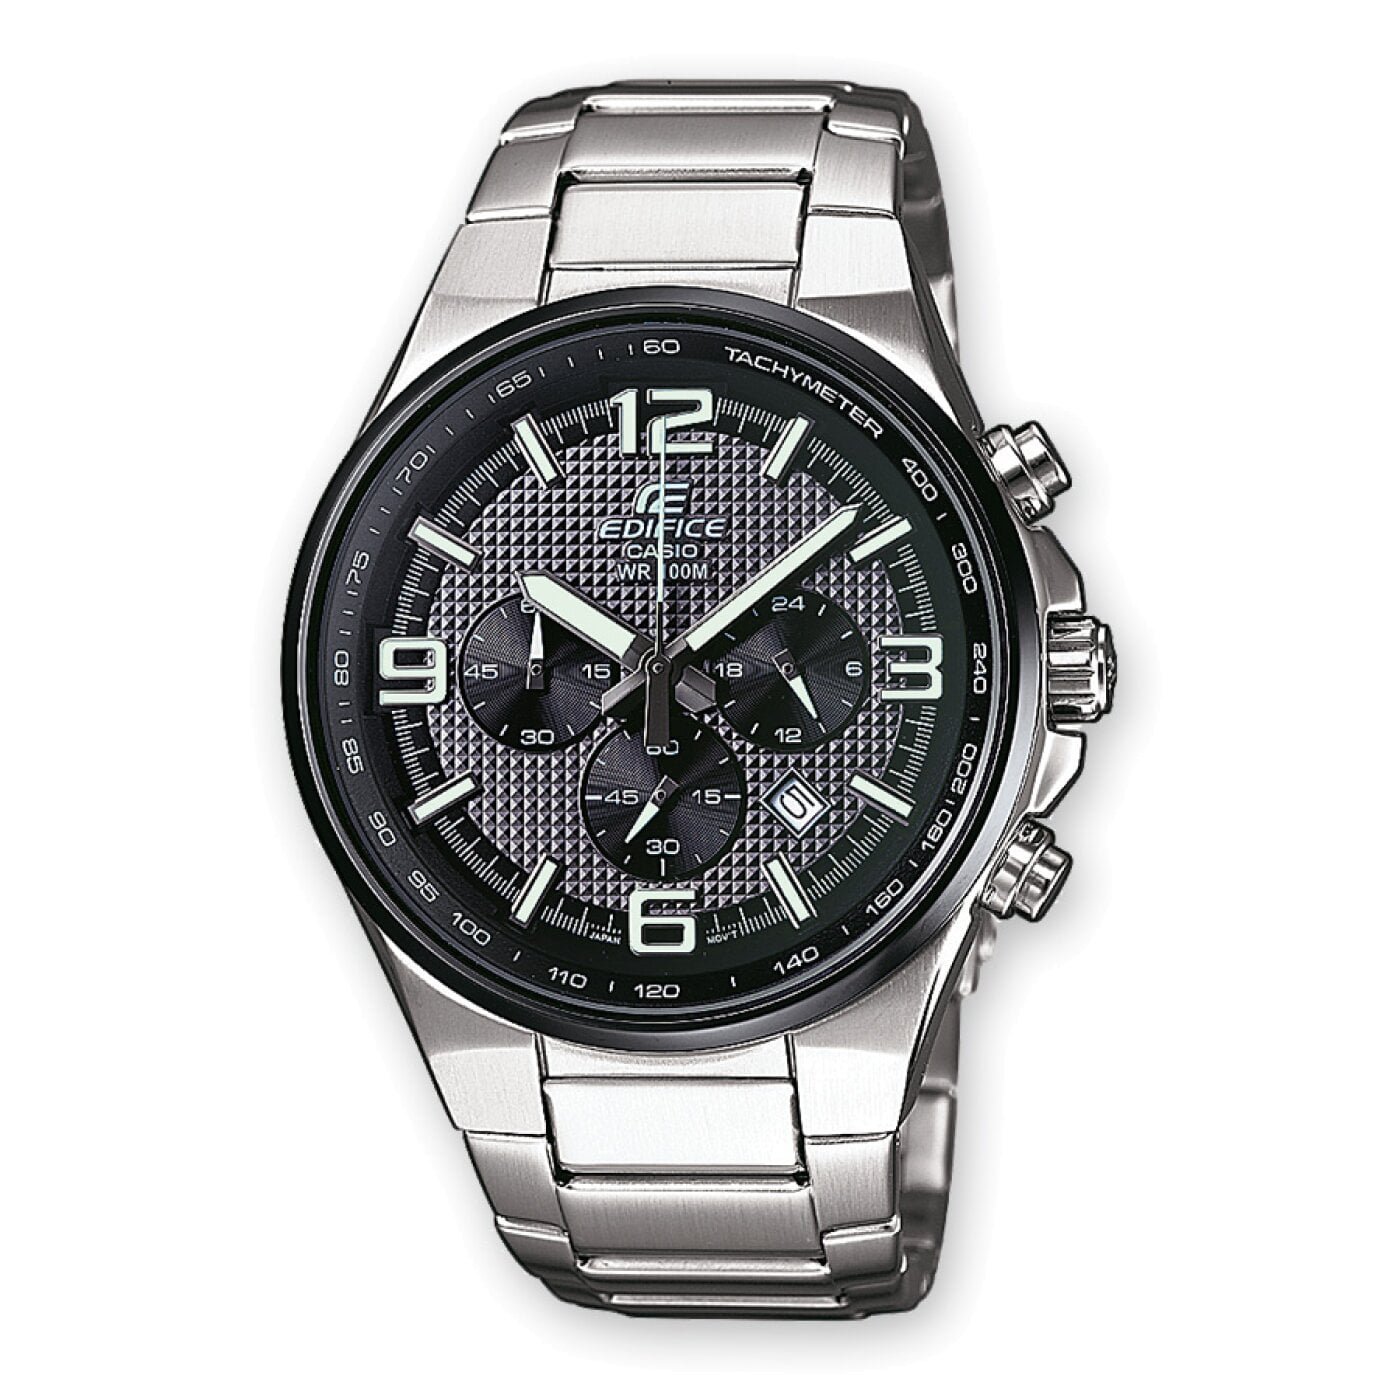 EFR-515D-1A7VEF EDIFICE Classic Collection